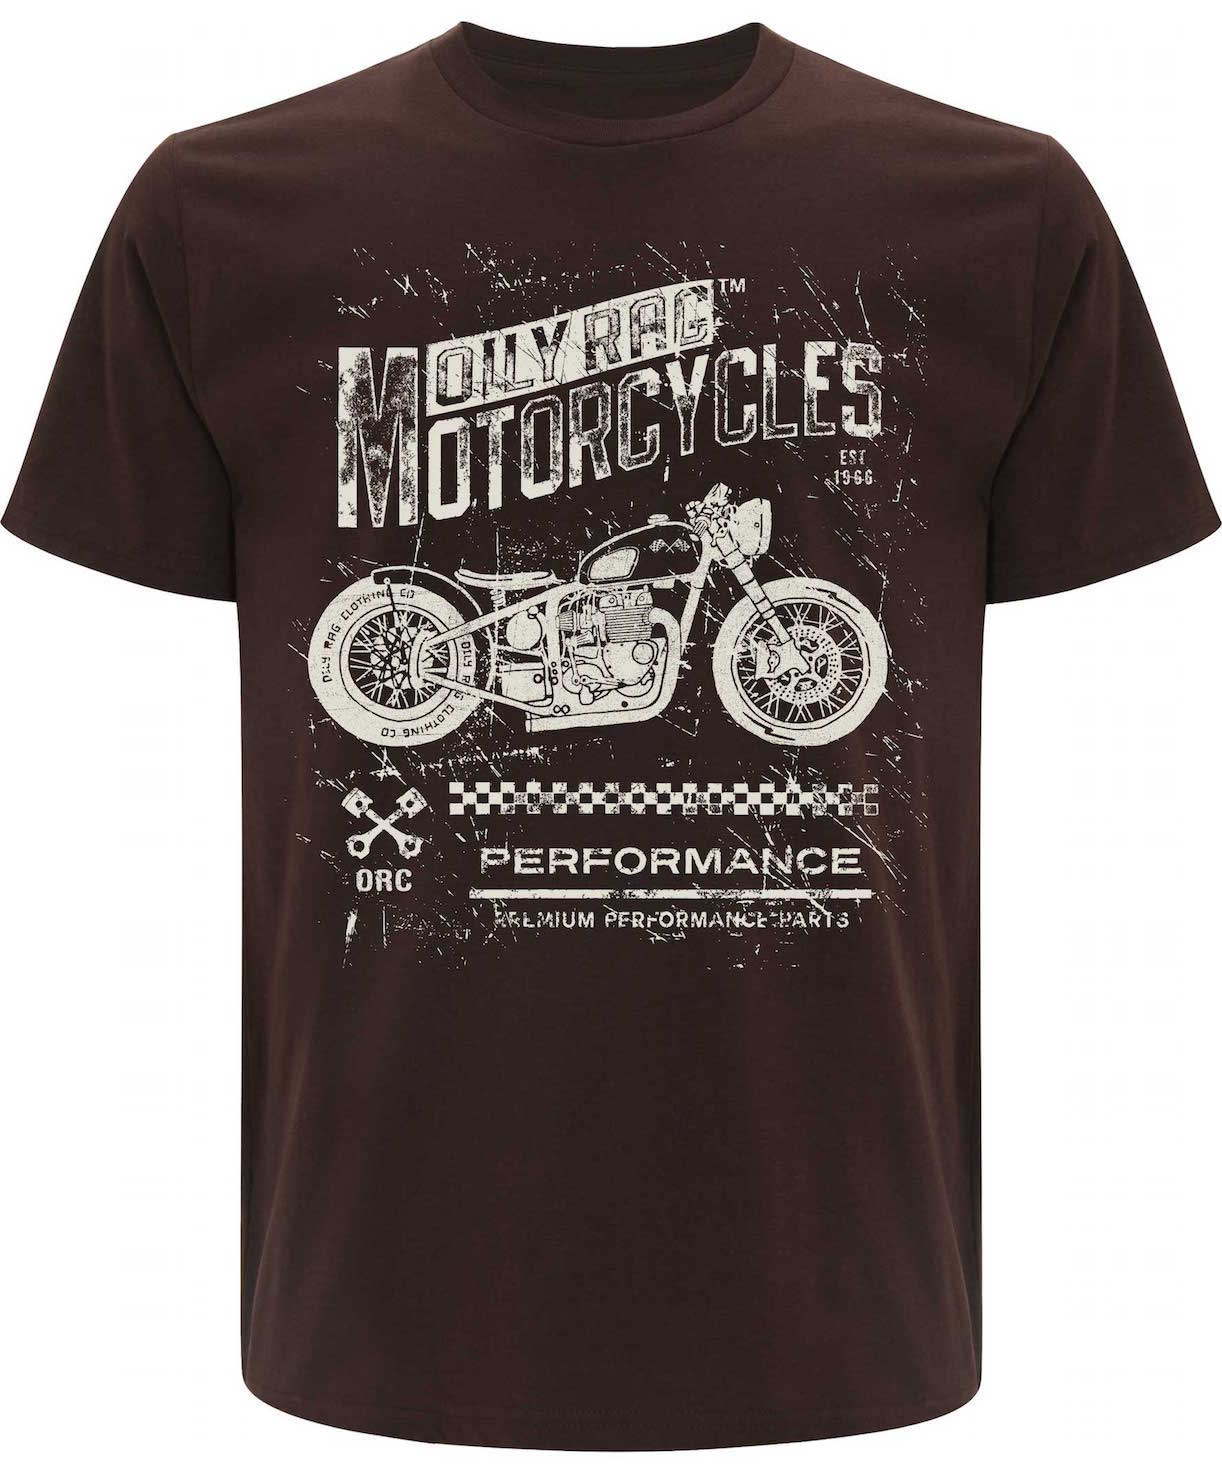 Oily Rag Clothing Motorcycle Sales retro style T'Shirt